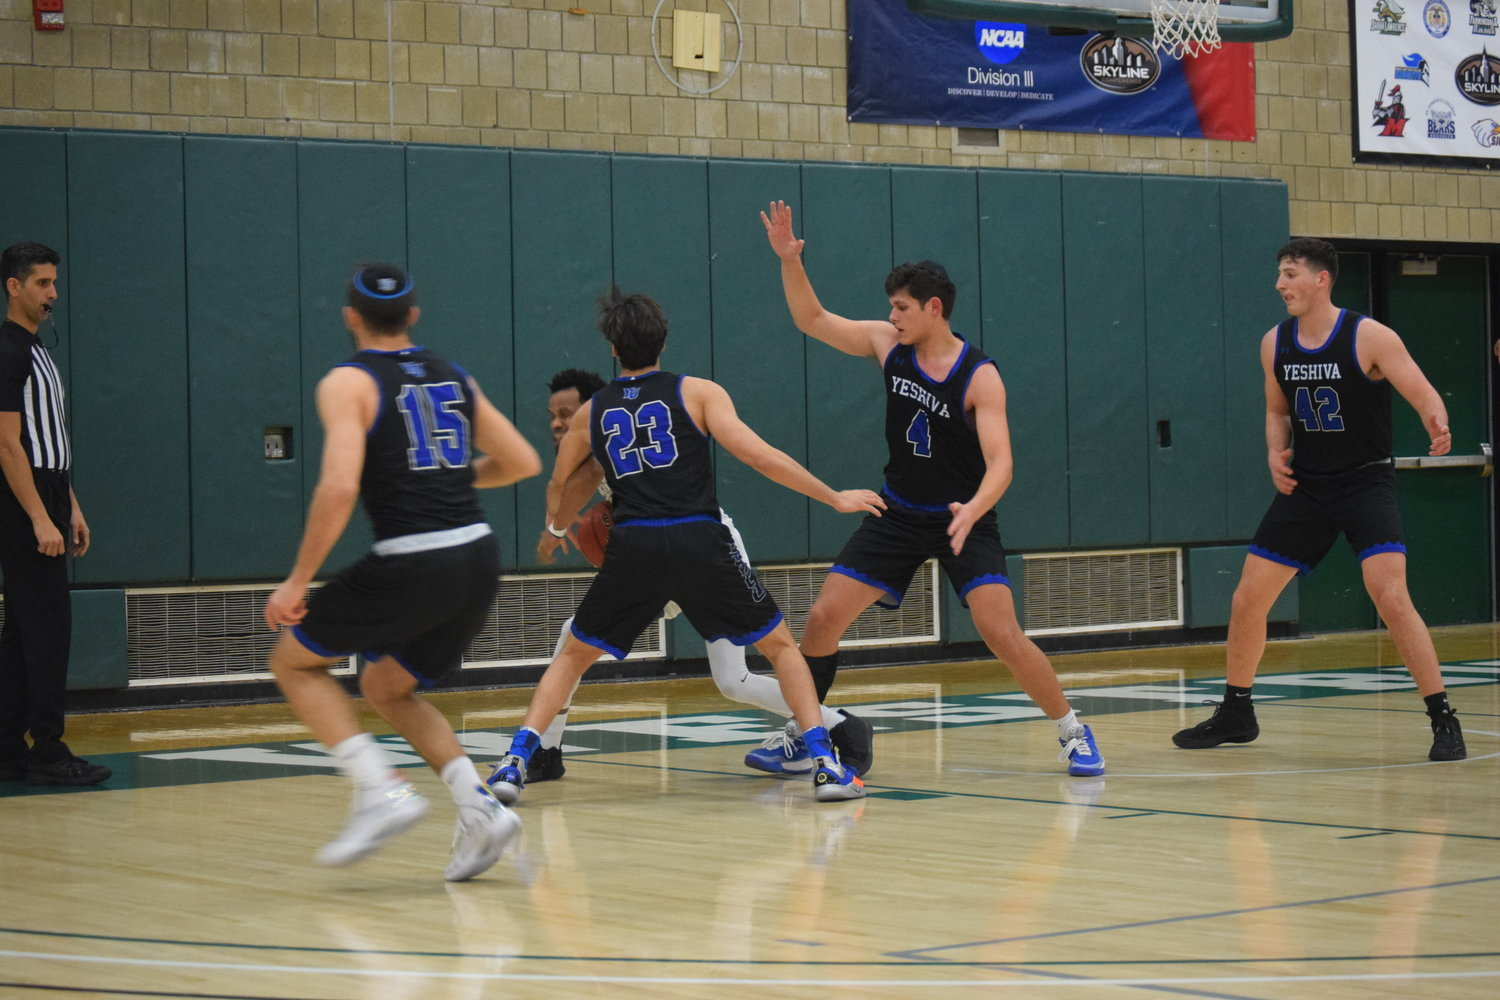 Yeshiva University's suffocating defense keys an offense that averages nearly 87 points a game. From left, Maccabees Eitan Halpert, Bar Alluf, Gabriel Leifer and Caleb Milobsky surrounded a SUNY Old Westbury player in the Feb. 18 win.